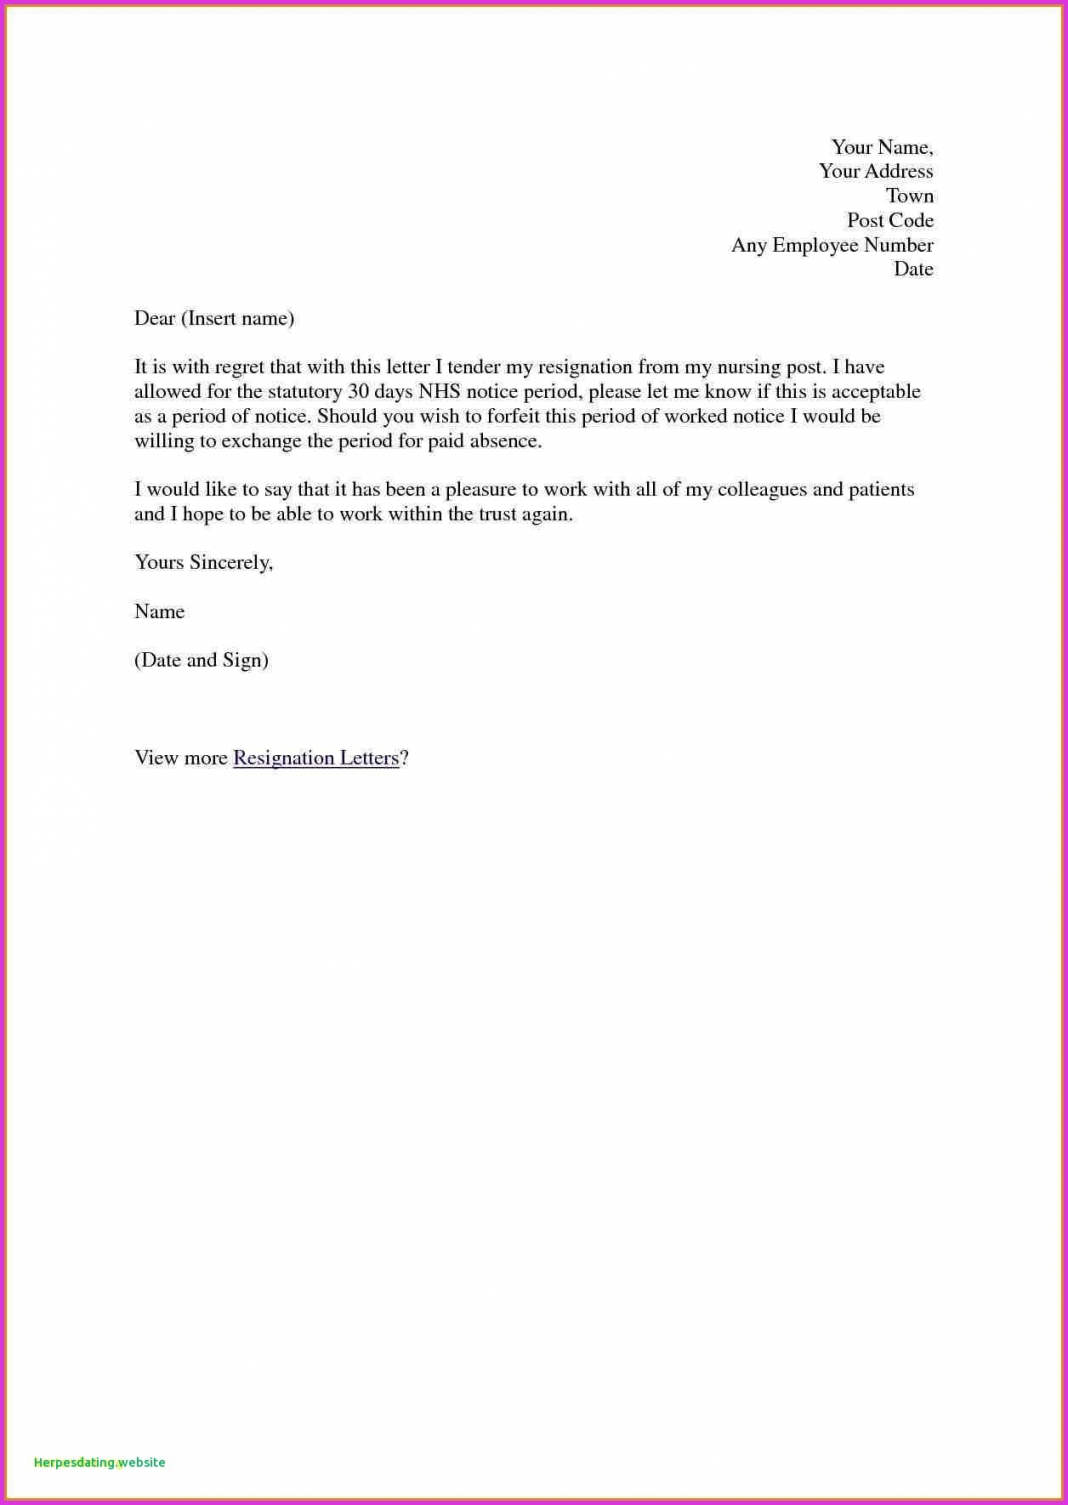 editable letter format nursing resignation for trust best fresh rn template nurse resignation letter template